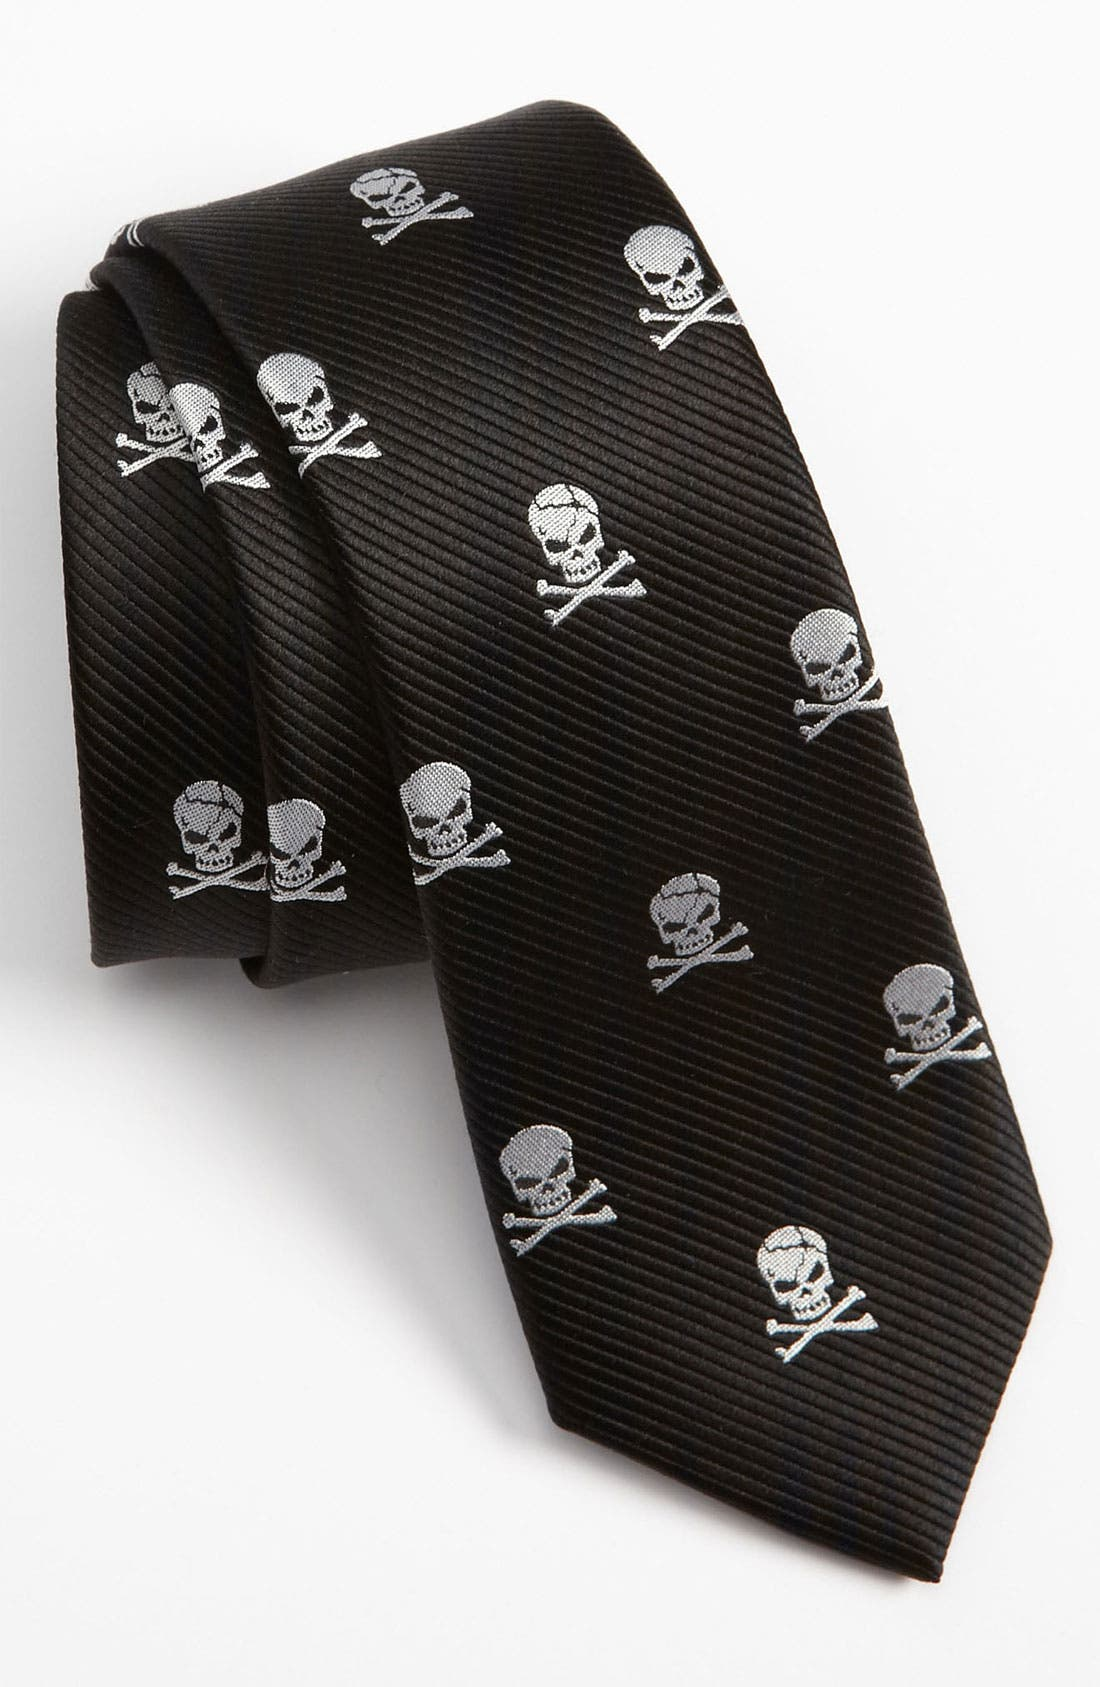 Alternate Image 1 Selected - The Tie Bar Silk Skull and Crossbones Tie (Online Only)